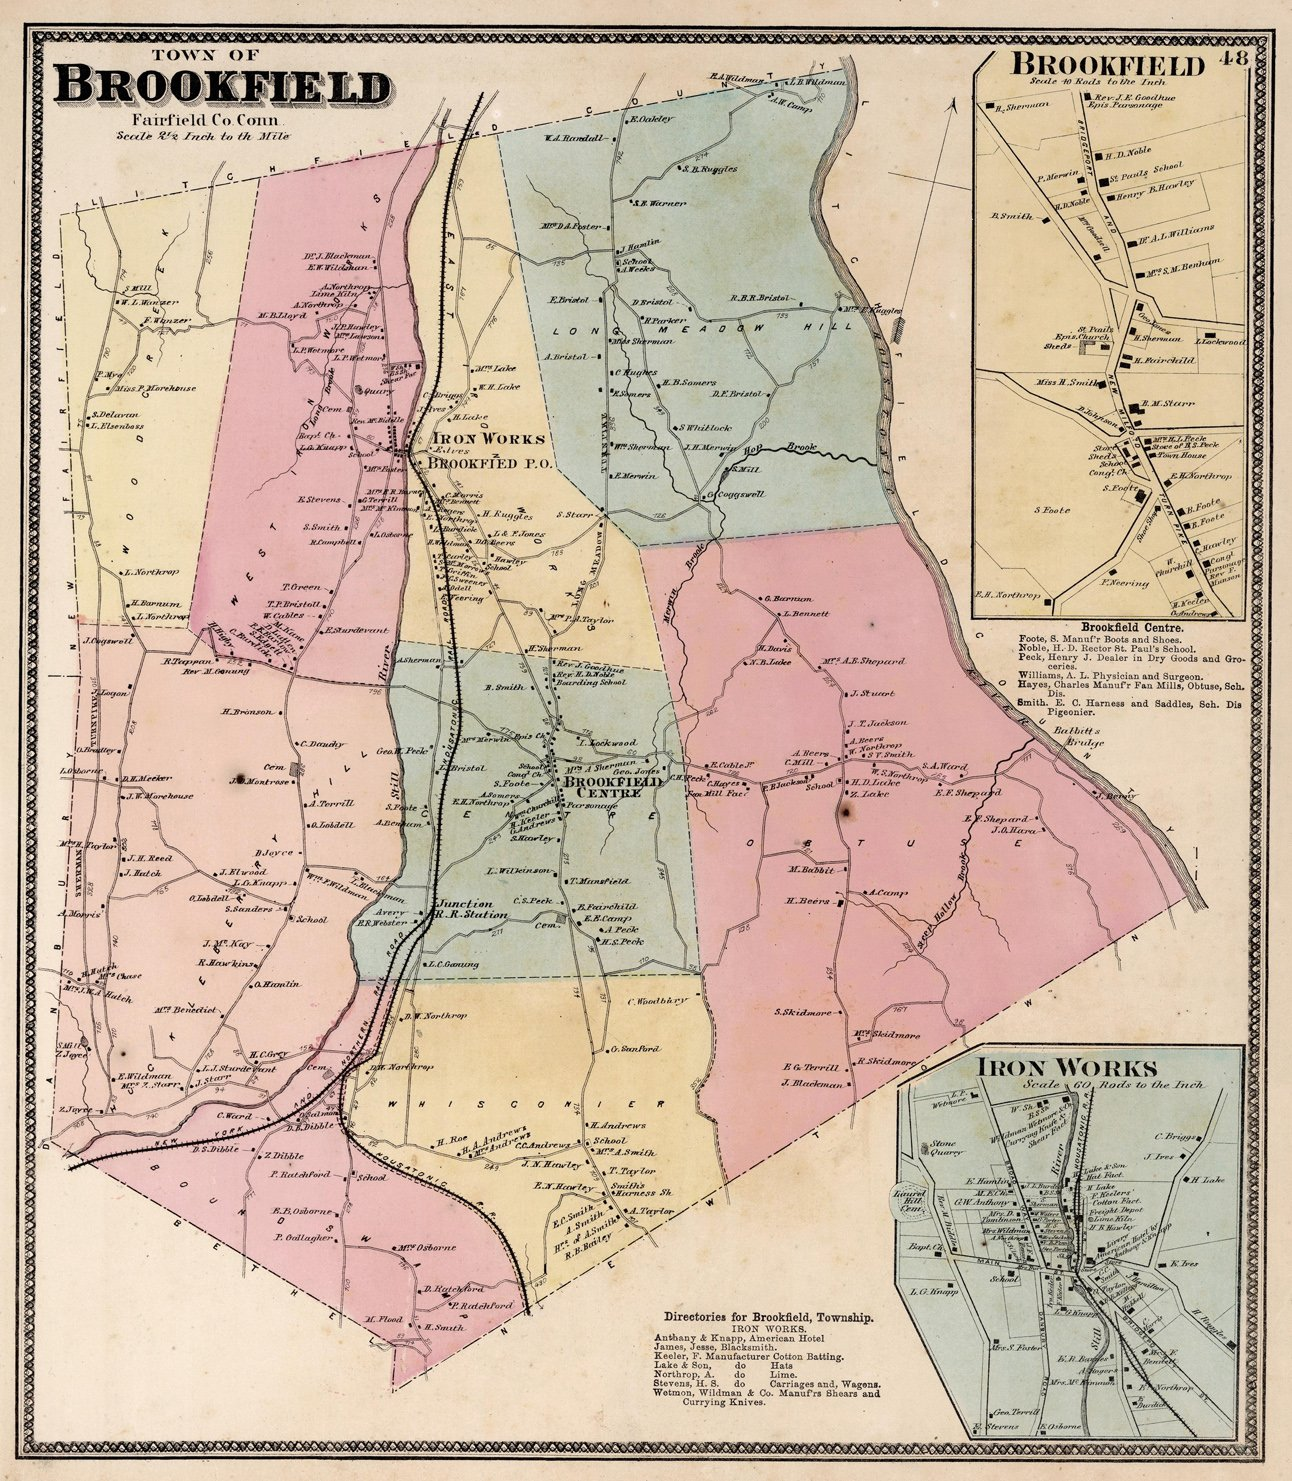 Amazon.com: Map Poster - Town of Brookfield, Fairfield County ...